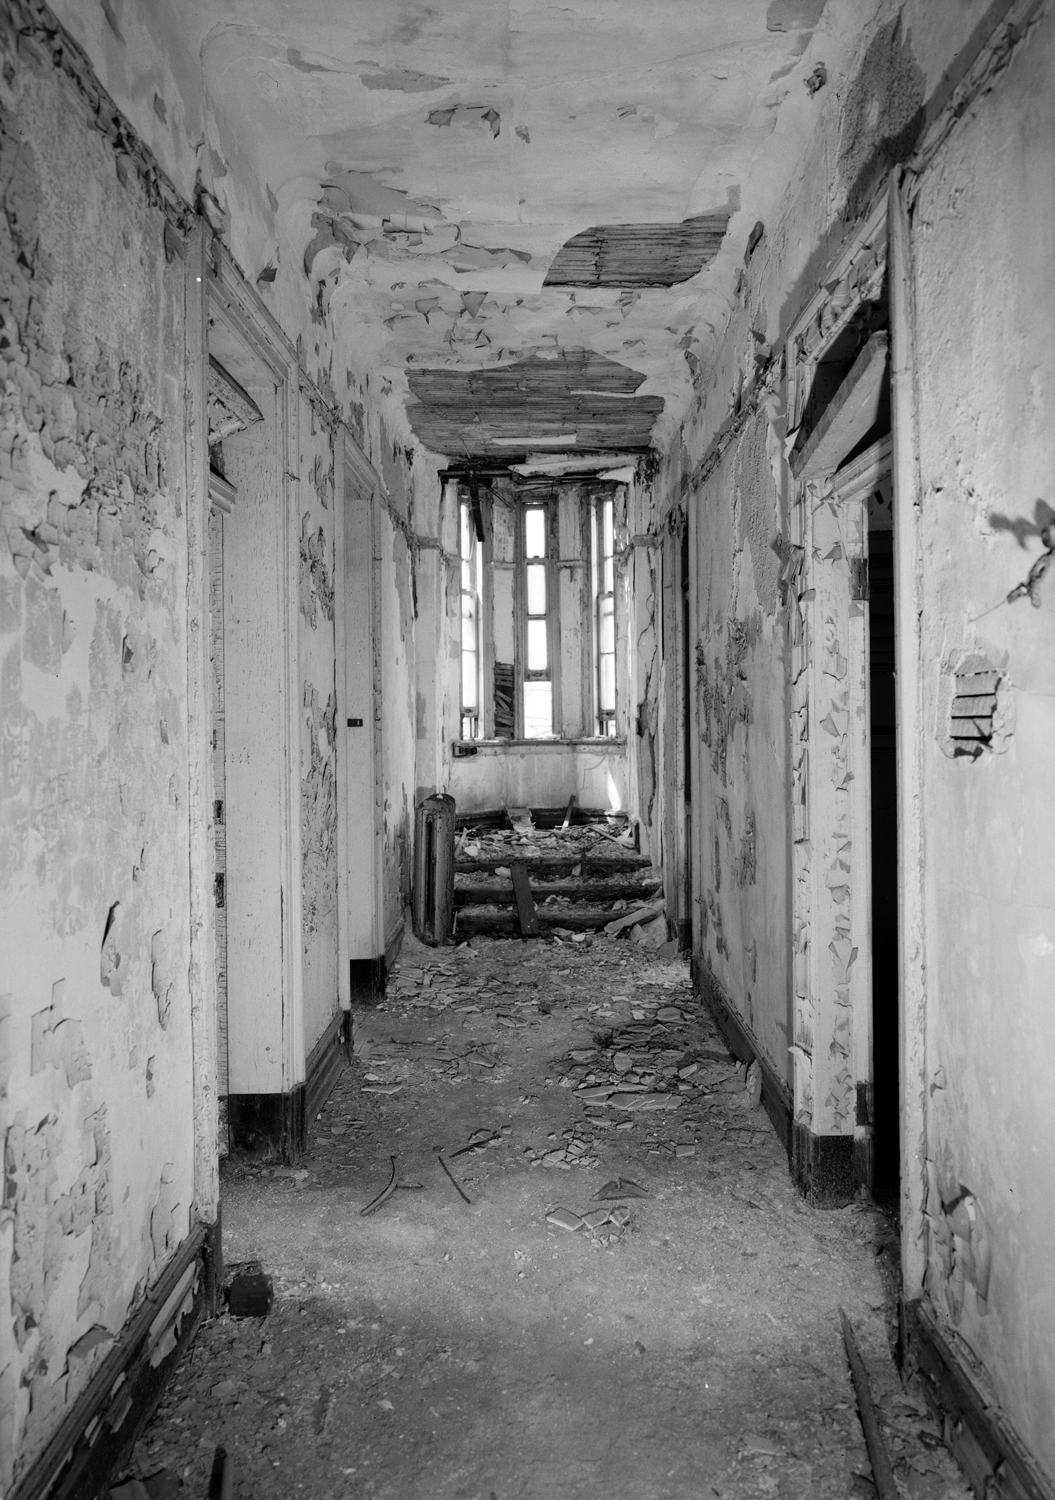 Hallway and interior view of on of the building's oriel windows, interiors of the building no longer exist, Library of Congress, 1983